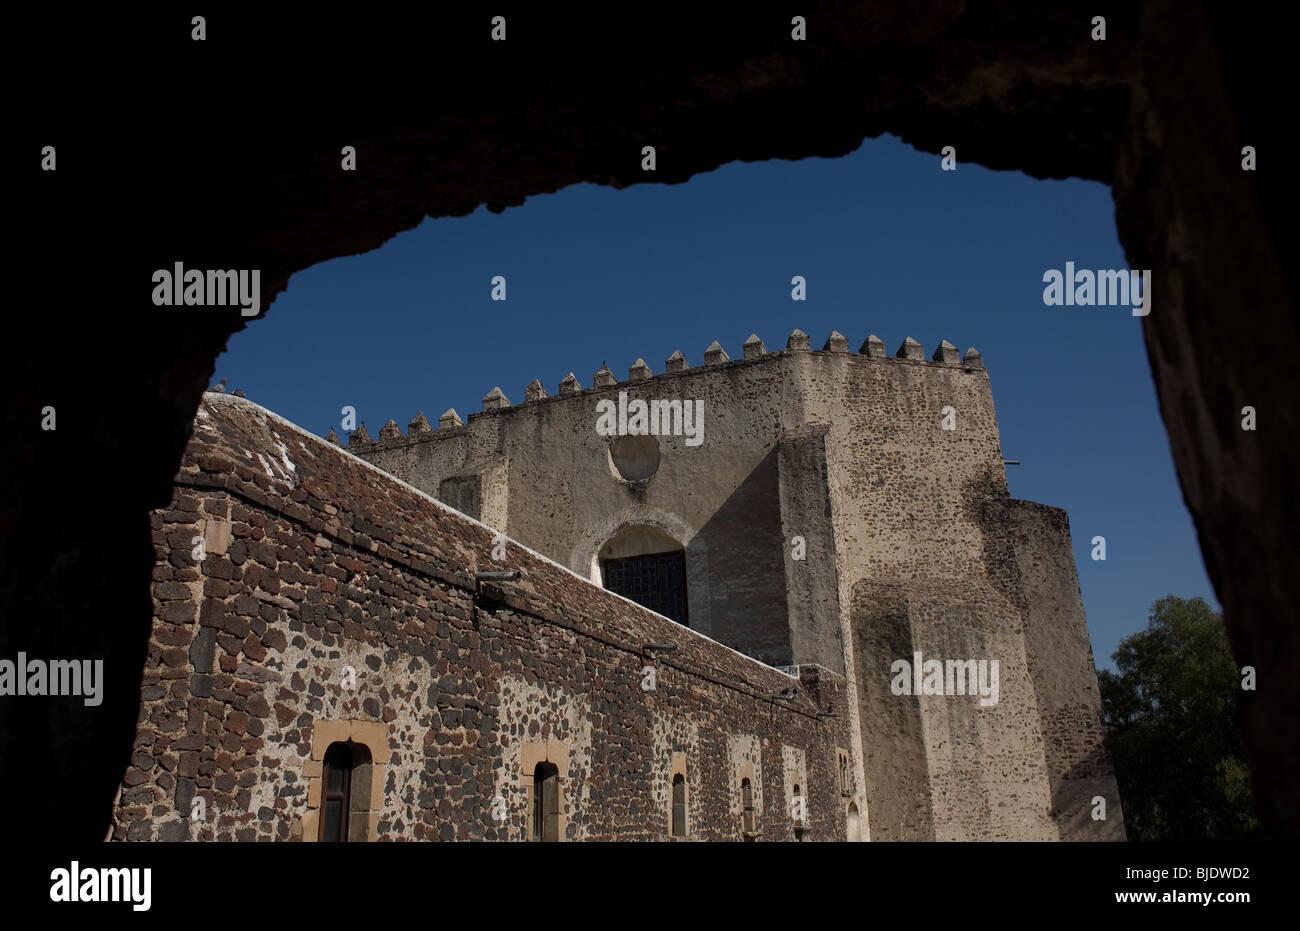 The back of the church of the ex convent San Agustin Acolman is seen trought a window in Acolman, Mexico City Stock Photo